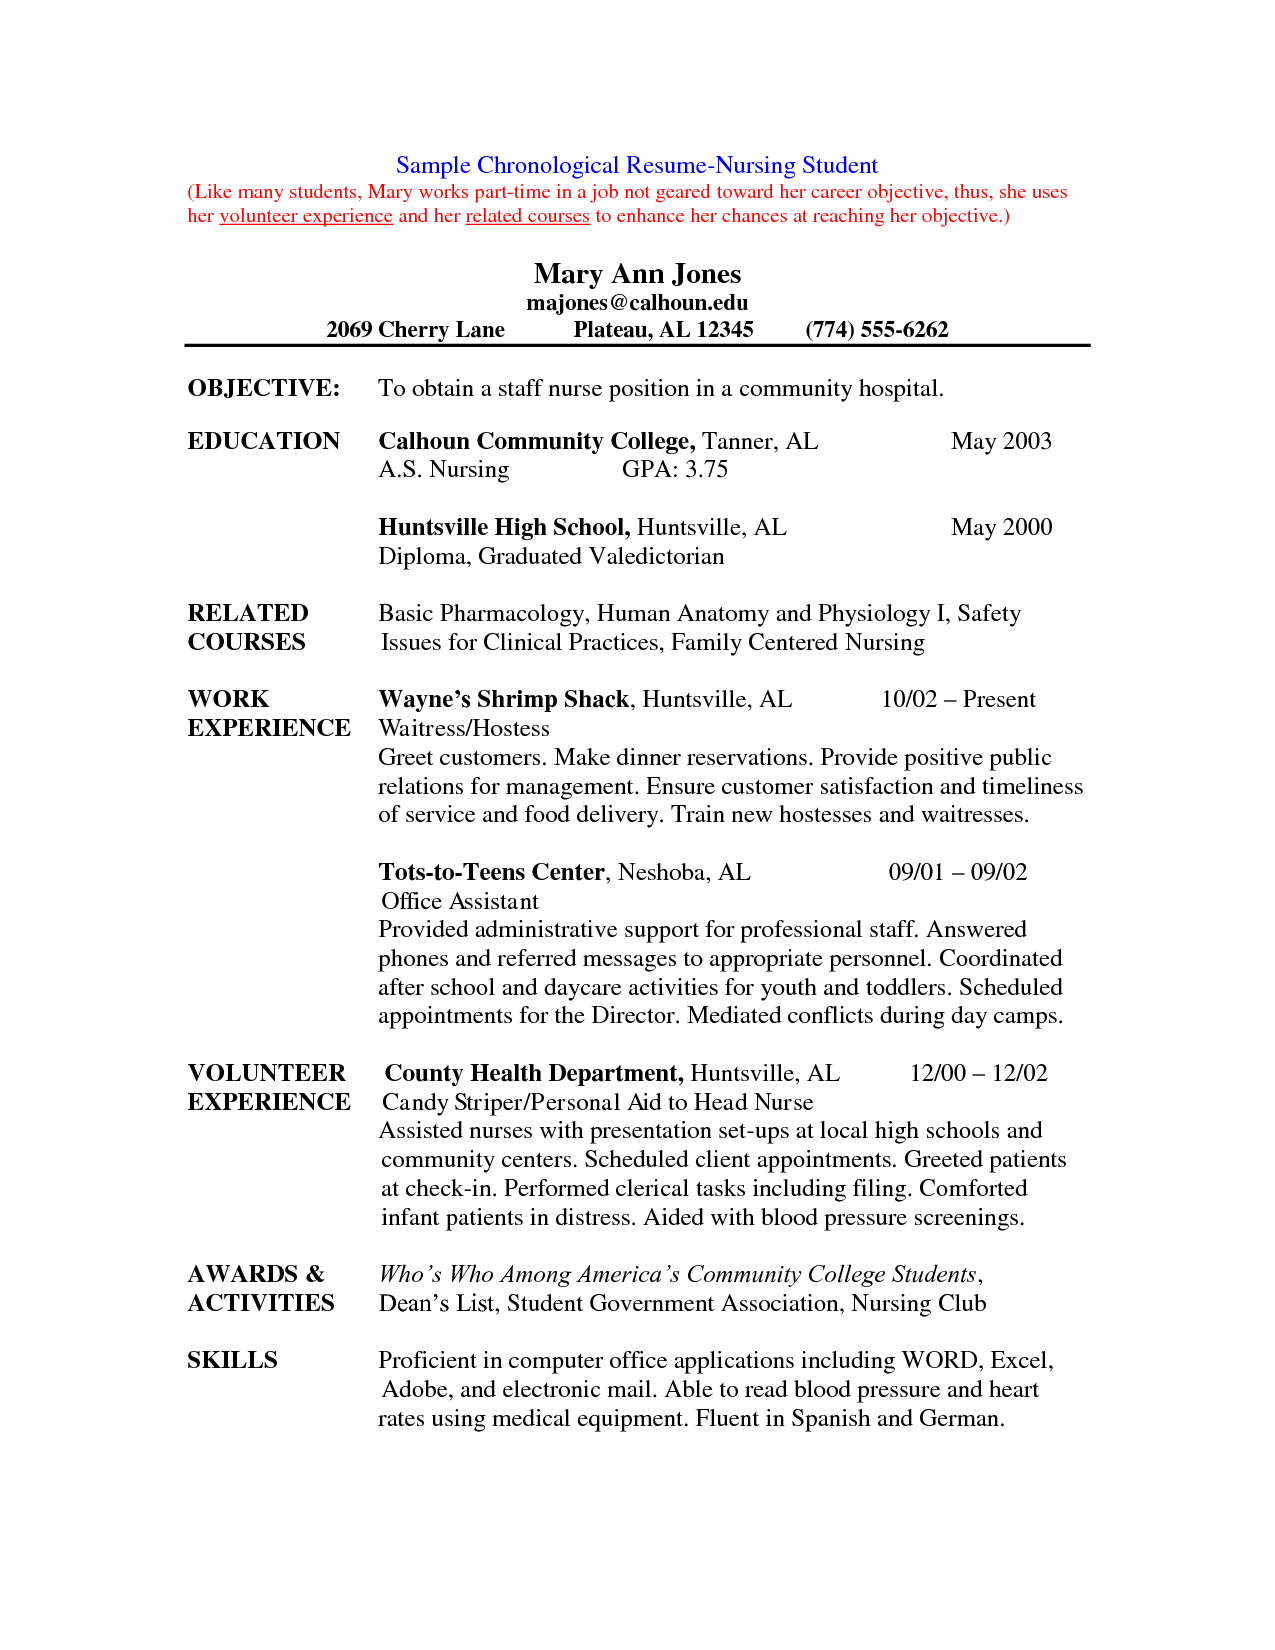 nursing student resume template hdresume templates cover letter examples - Nursing Student Resume Template